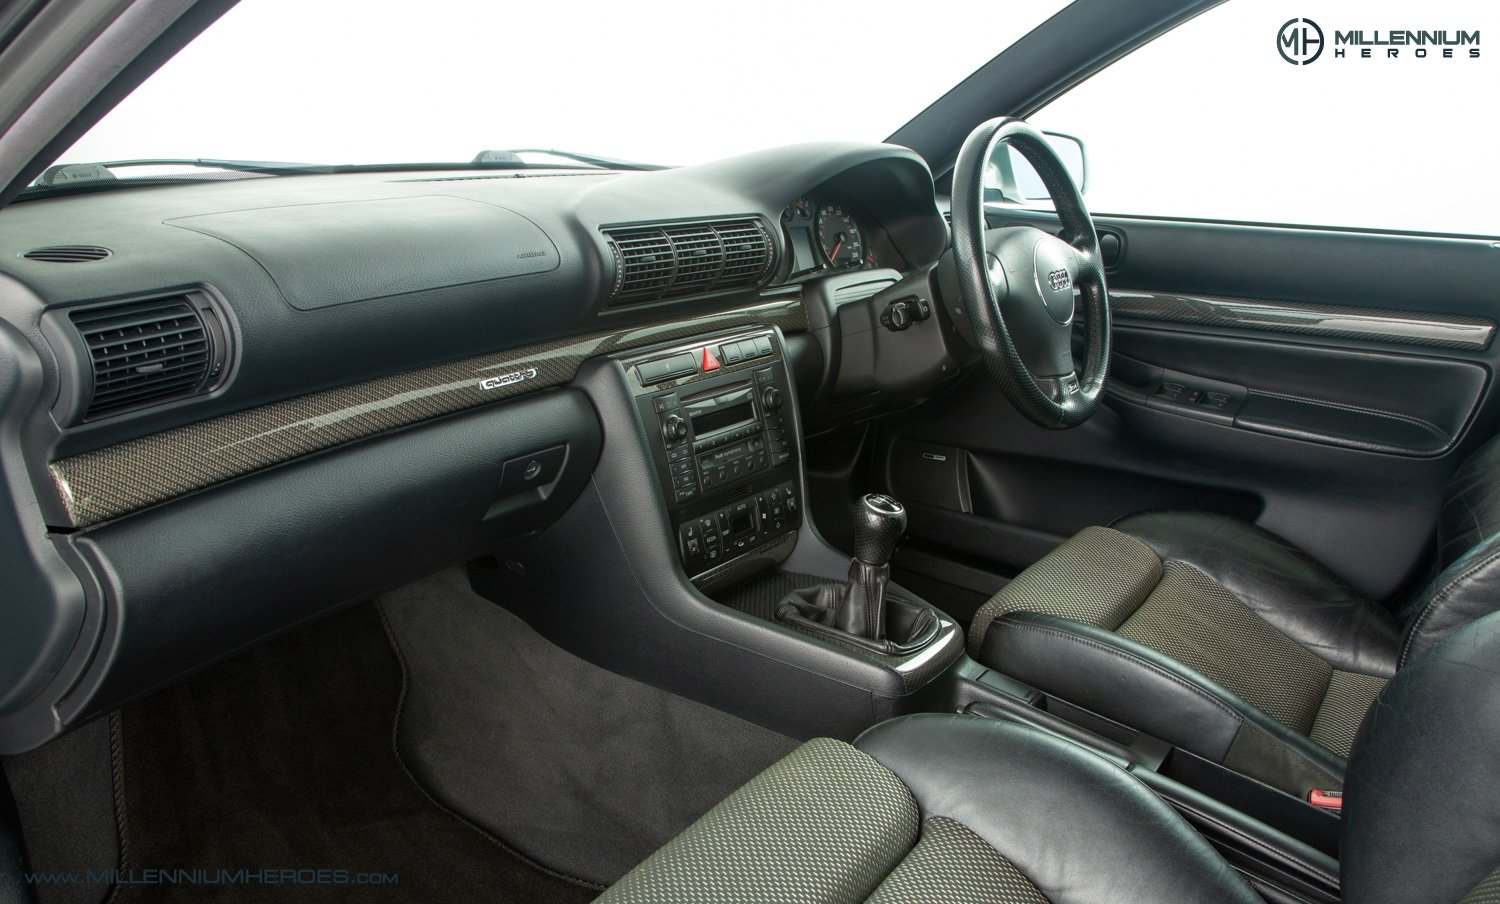 2001 AUDI B5 RS4 AVANT // 95K MILES // AVUS SILVER For Sale (picture 16 of 28)